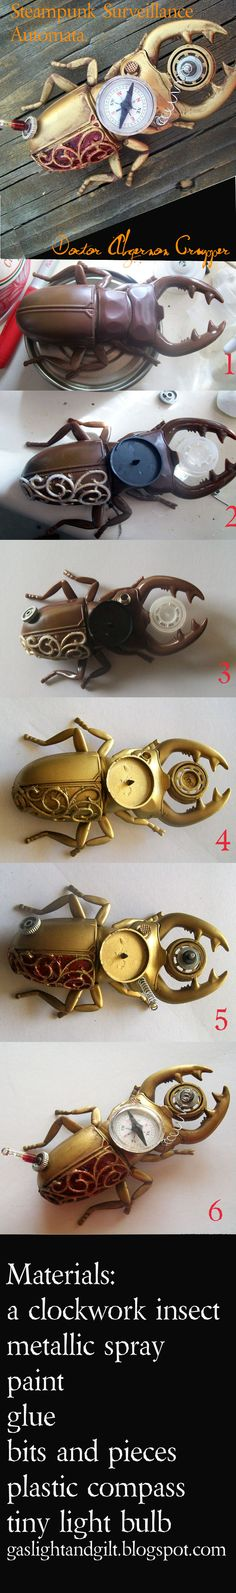 Steampunk Surveillance Arthropod Walkthrough by ~Rhissanna on deviantART